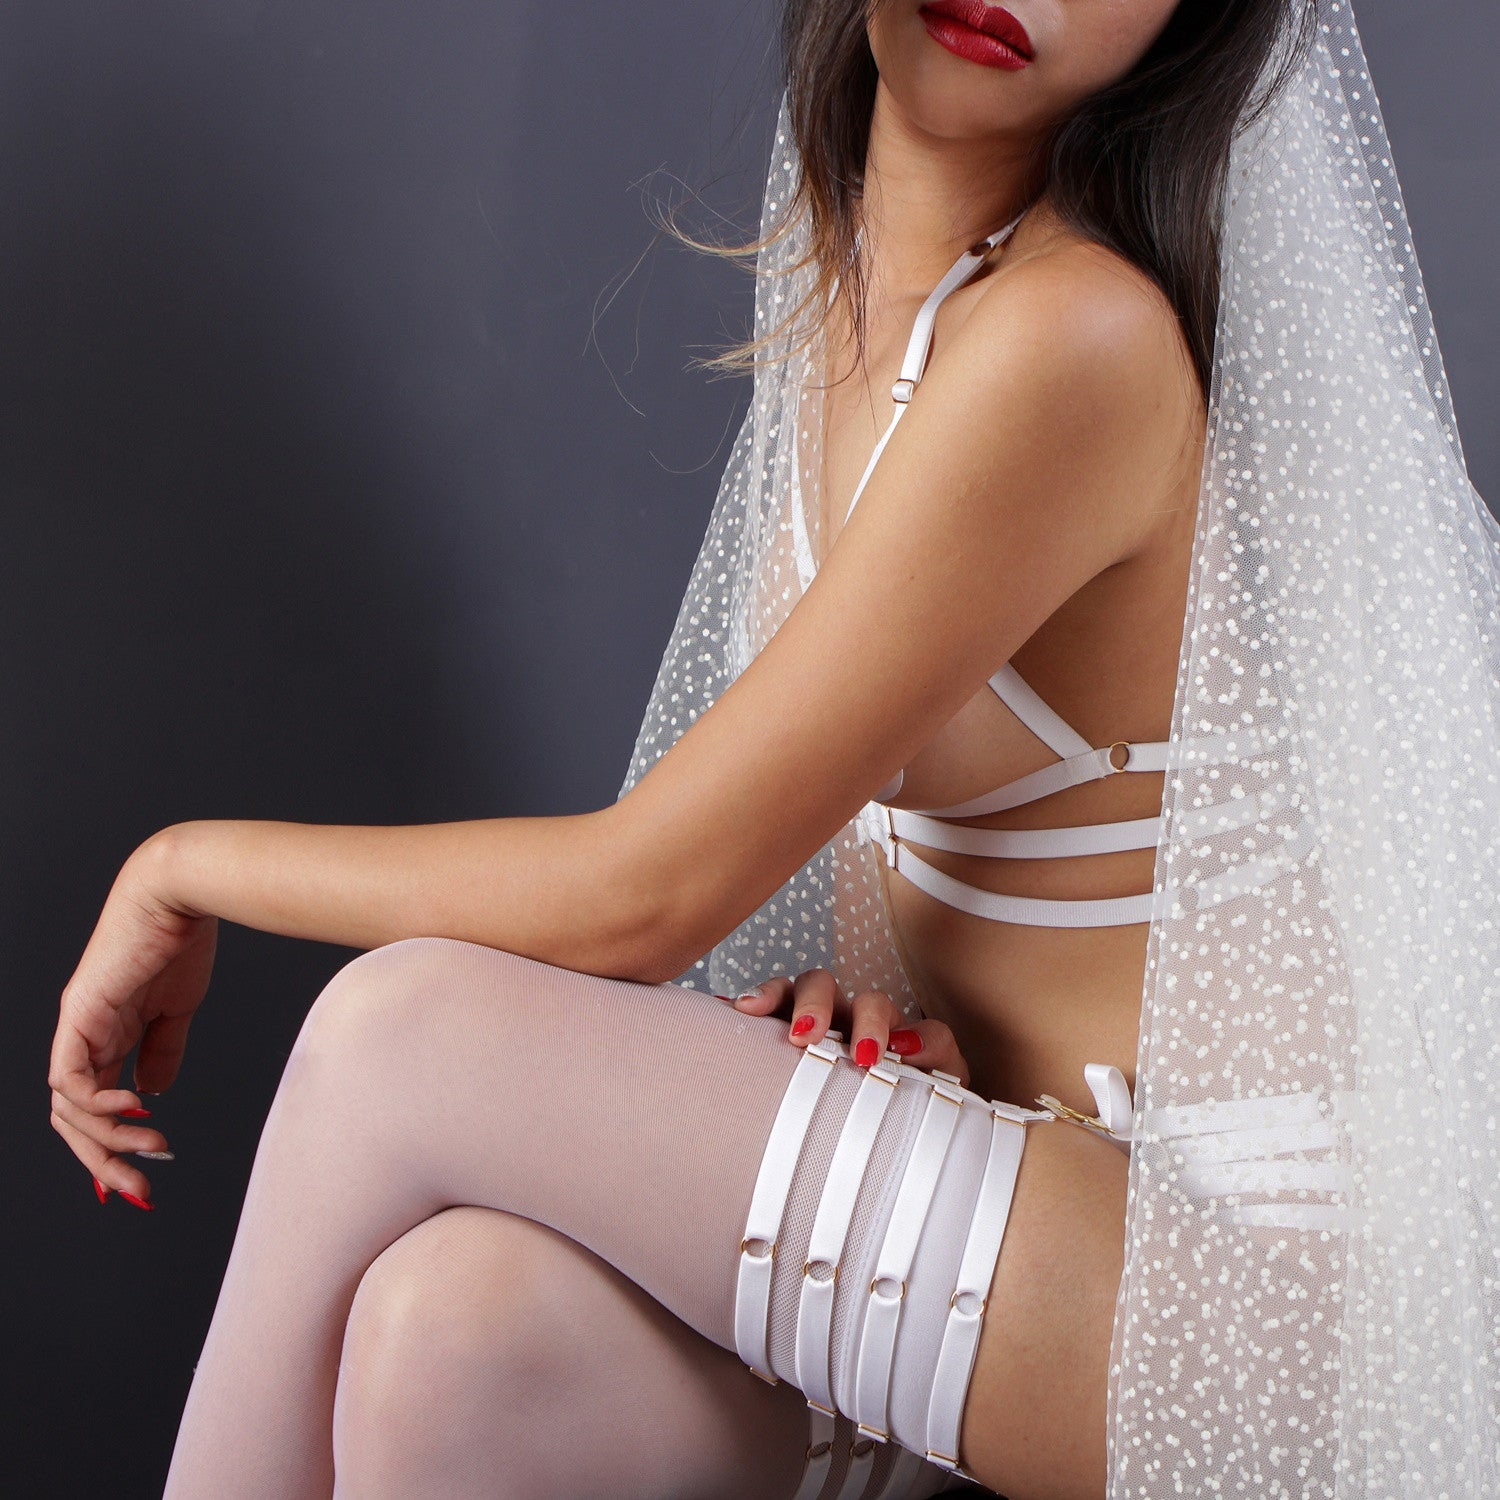 Bridal white garters, Strappy white garters, Bridal lingerie, erotic lingerie by Ange Dechu - Ange Déchu